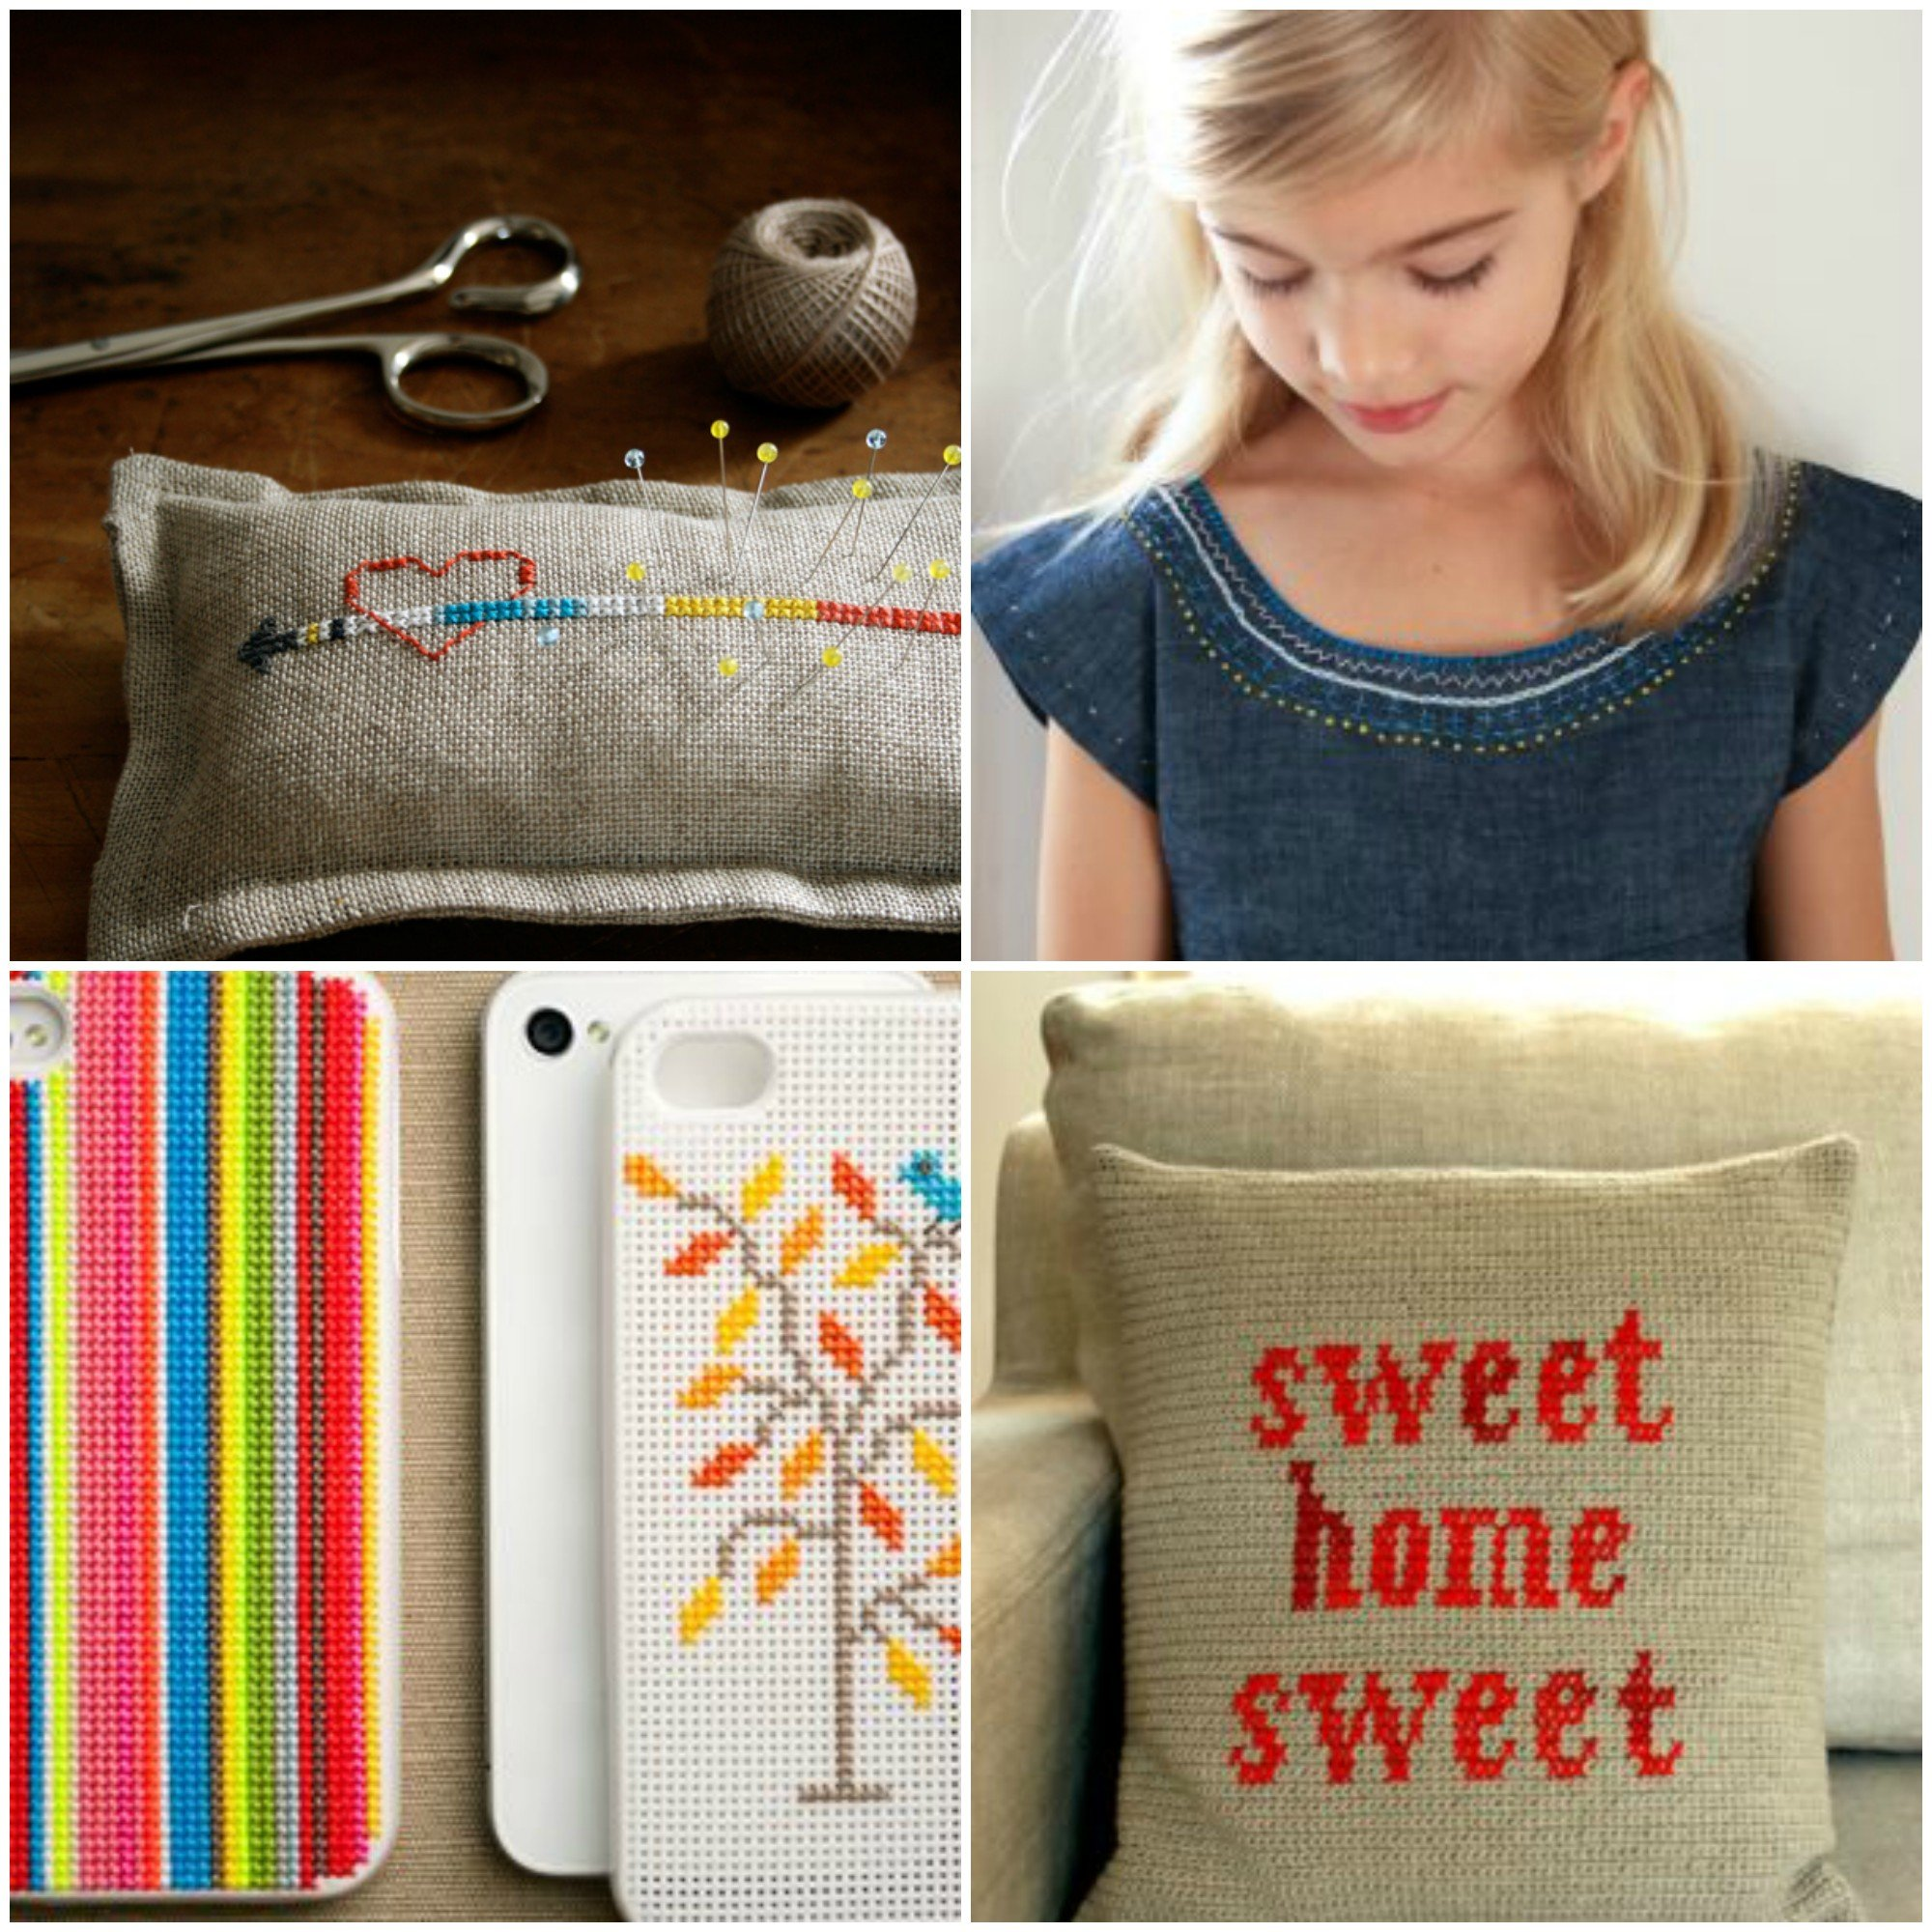 Loads of free patterns for knitting, sewing, crochet and embroidery